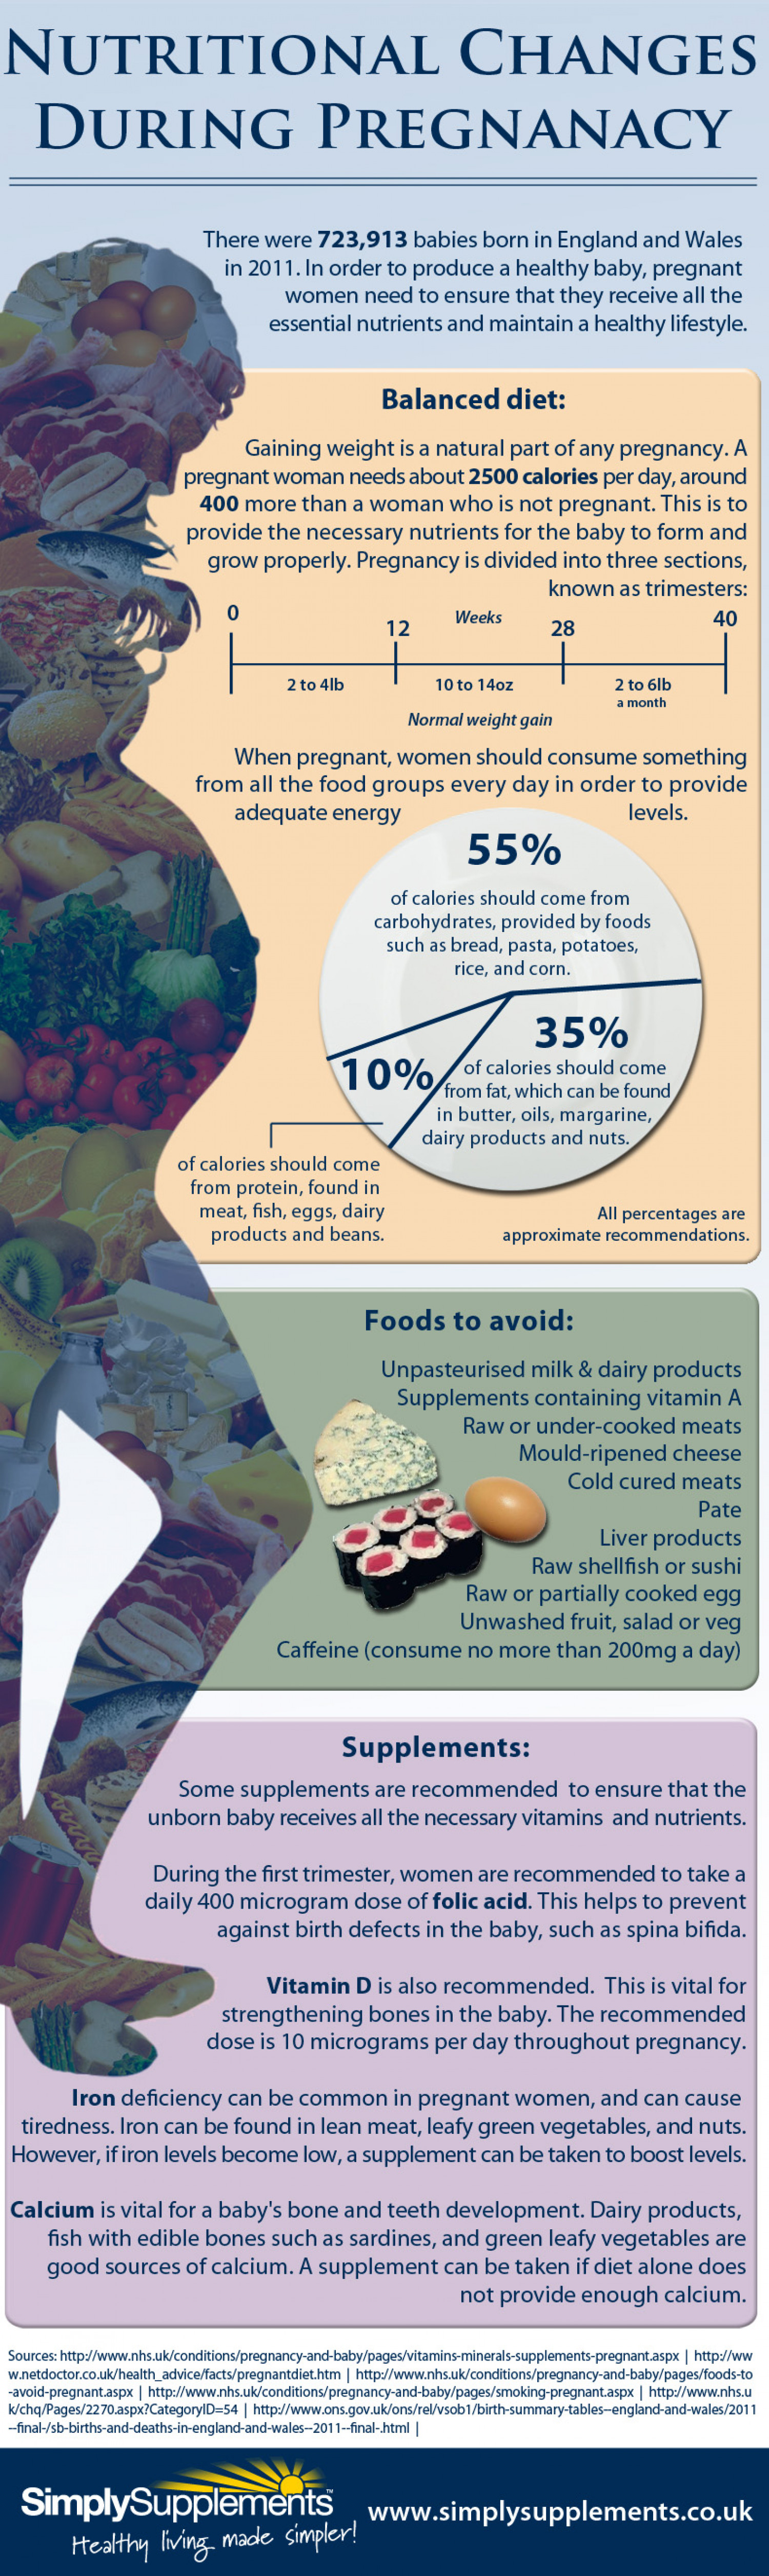 Nutritional Changes During Pregnancy Infographic